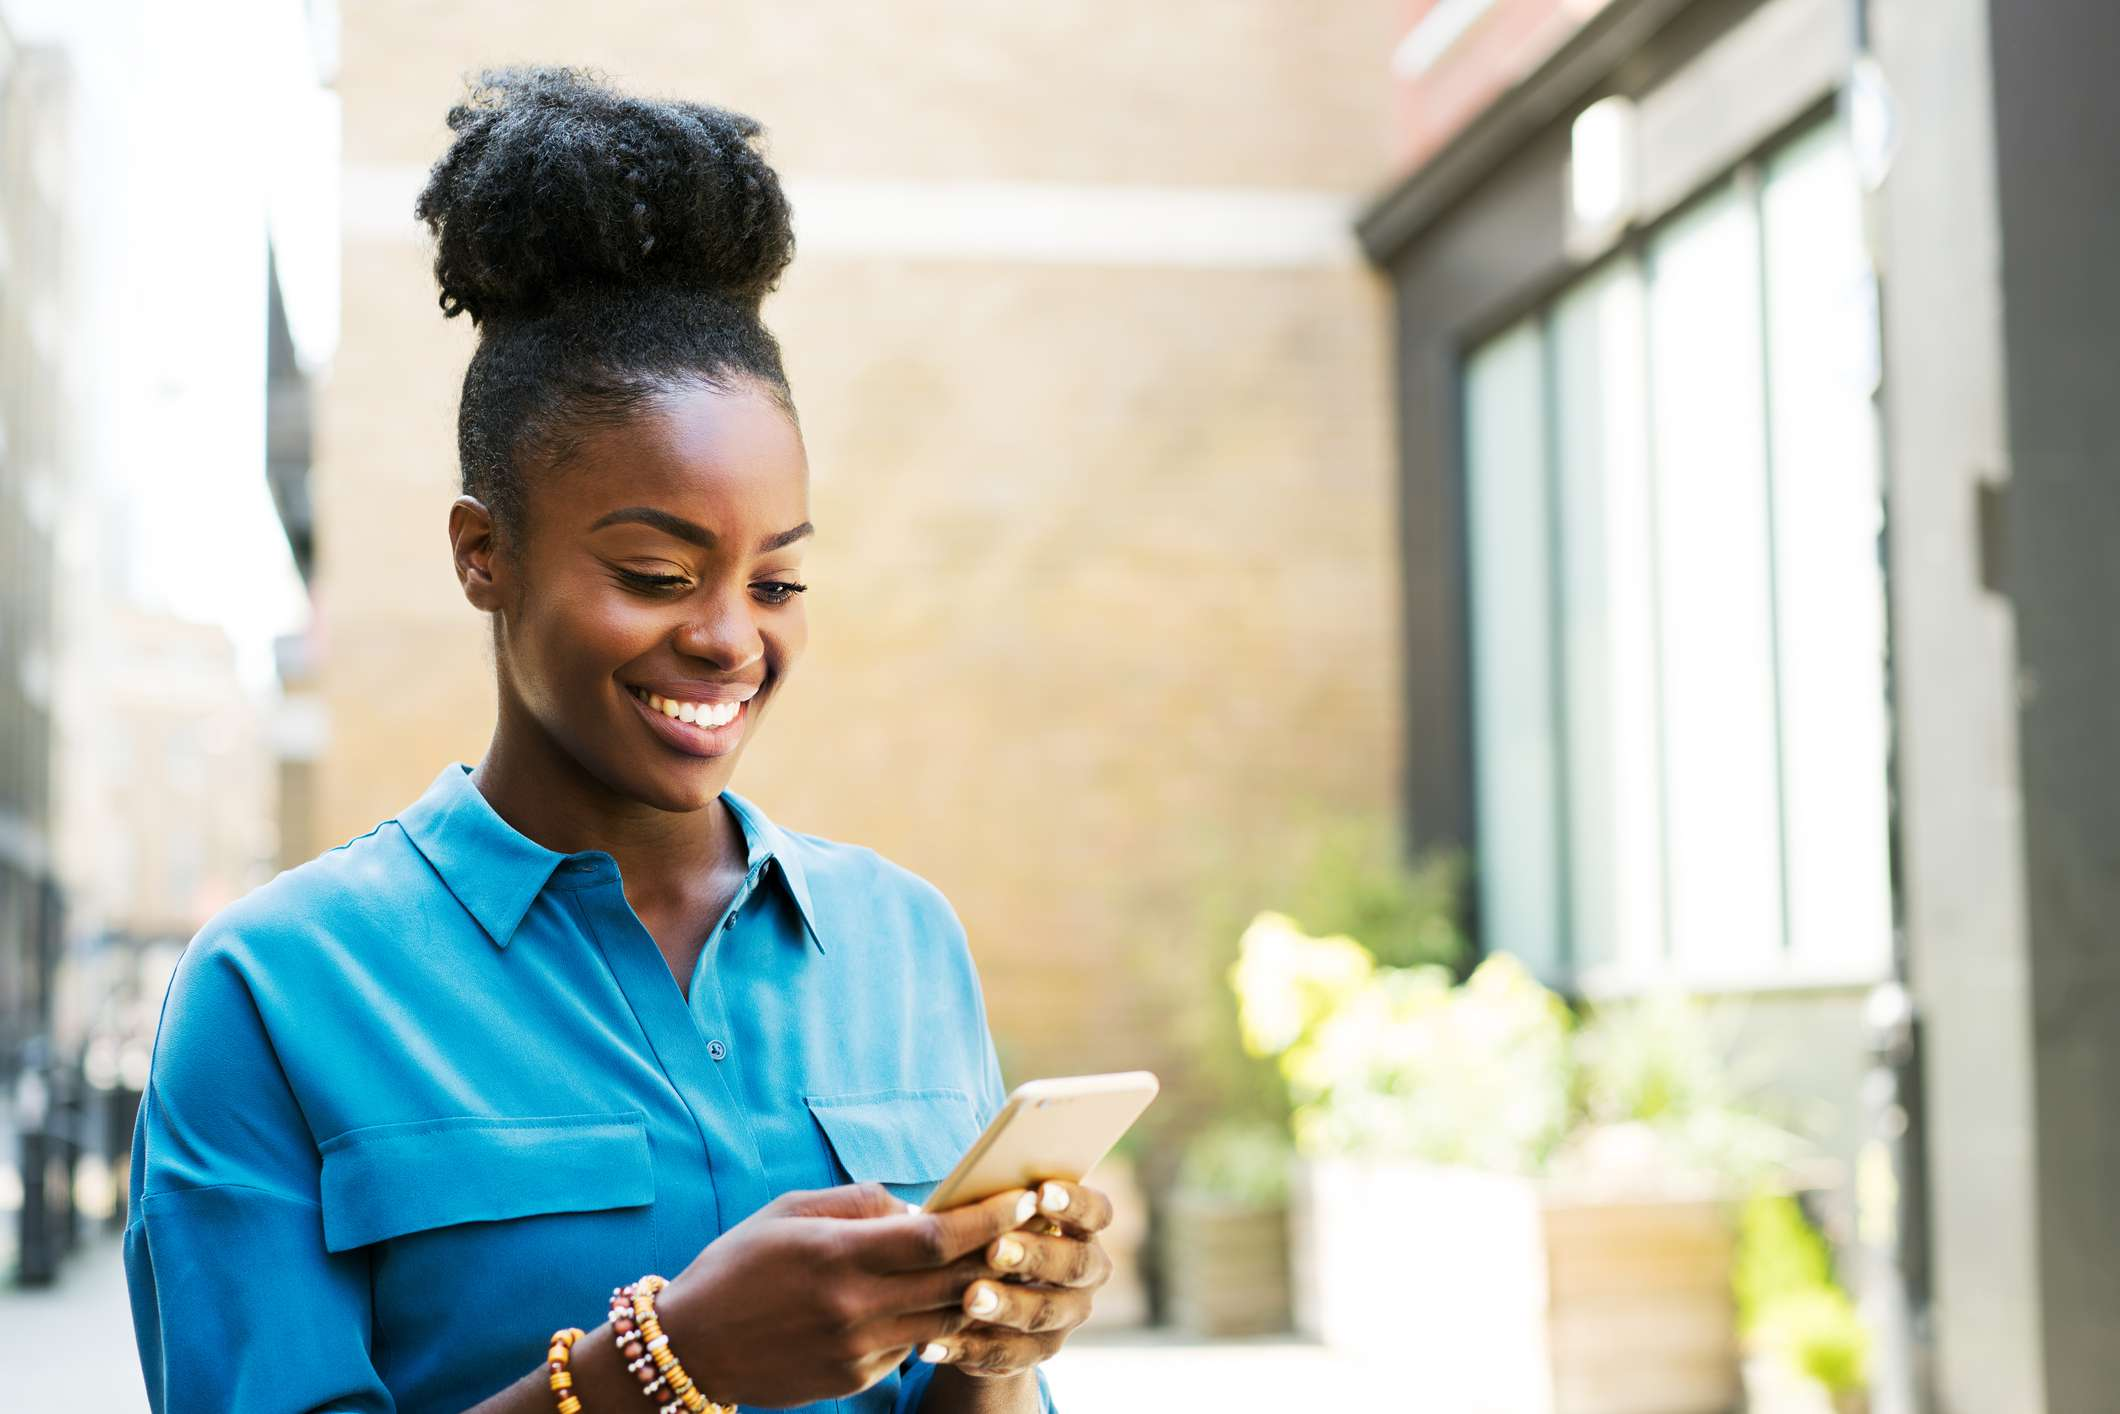 Smiling woman using smartphone